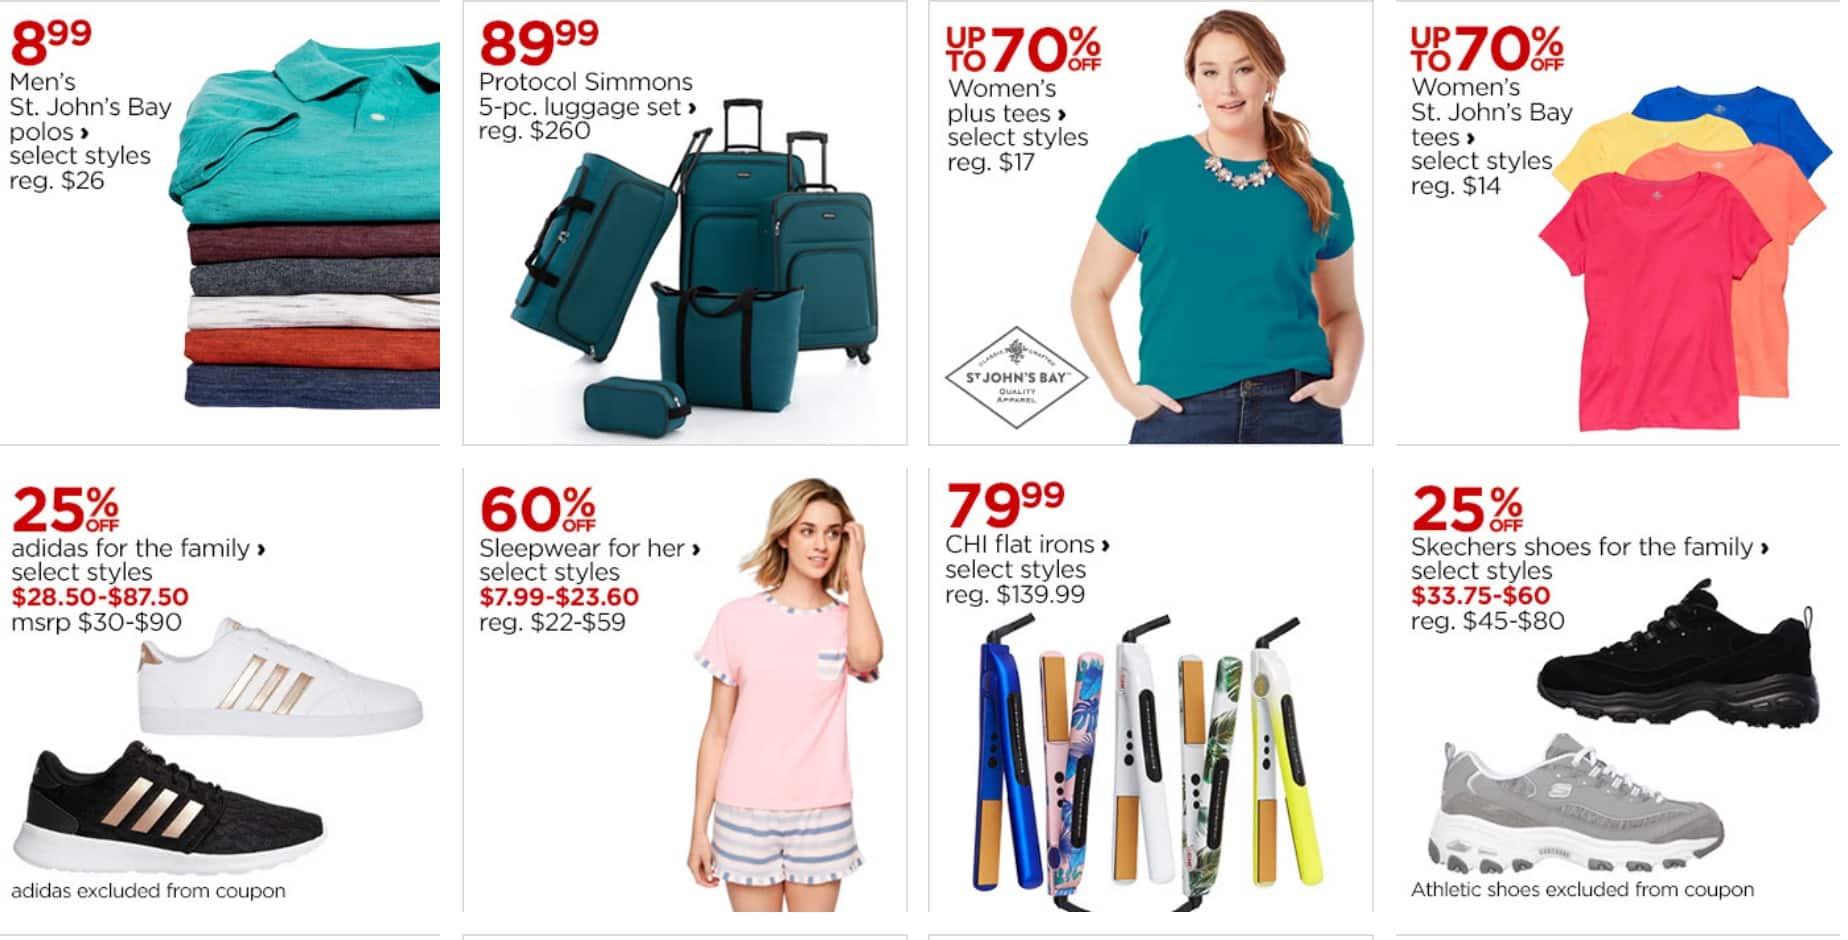 b83f28a35e09 How to Score Amazing Deals at the JCPenney Black Friday in July Sale ...